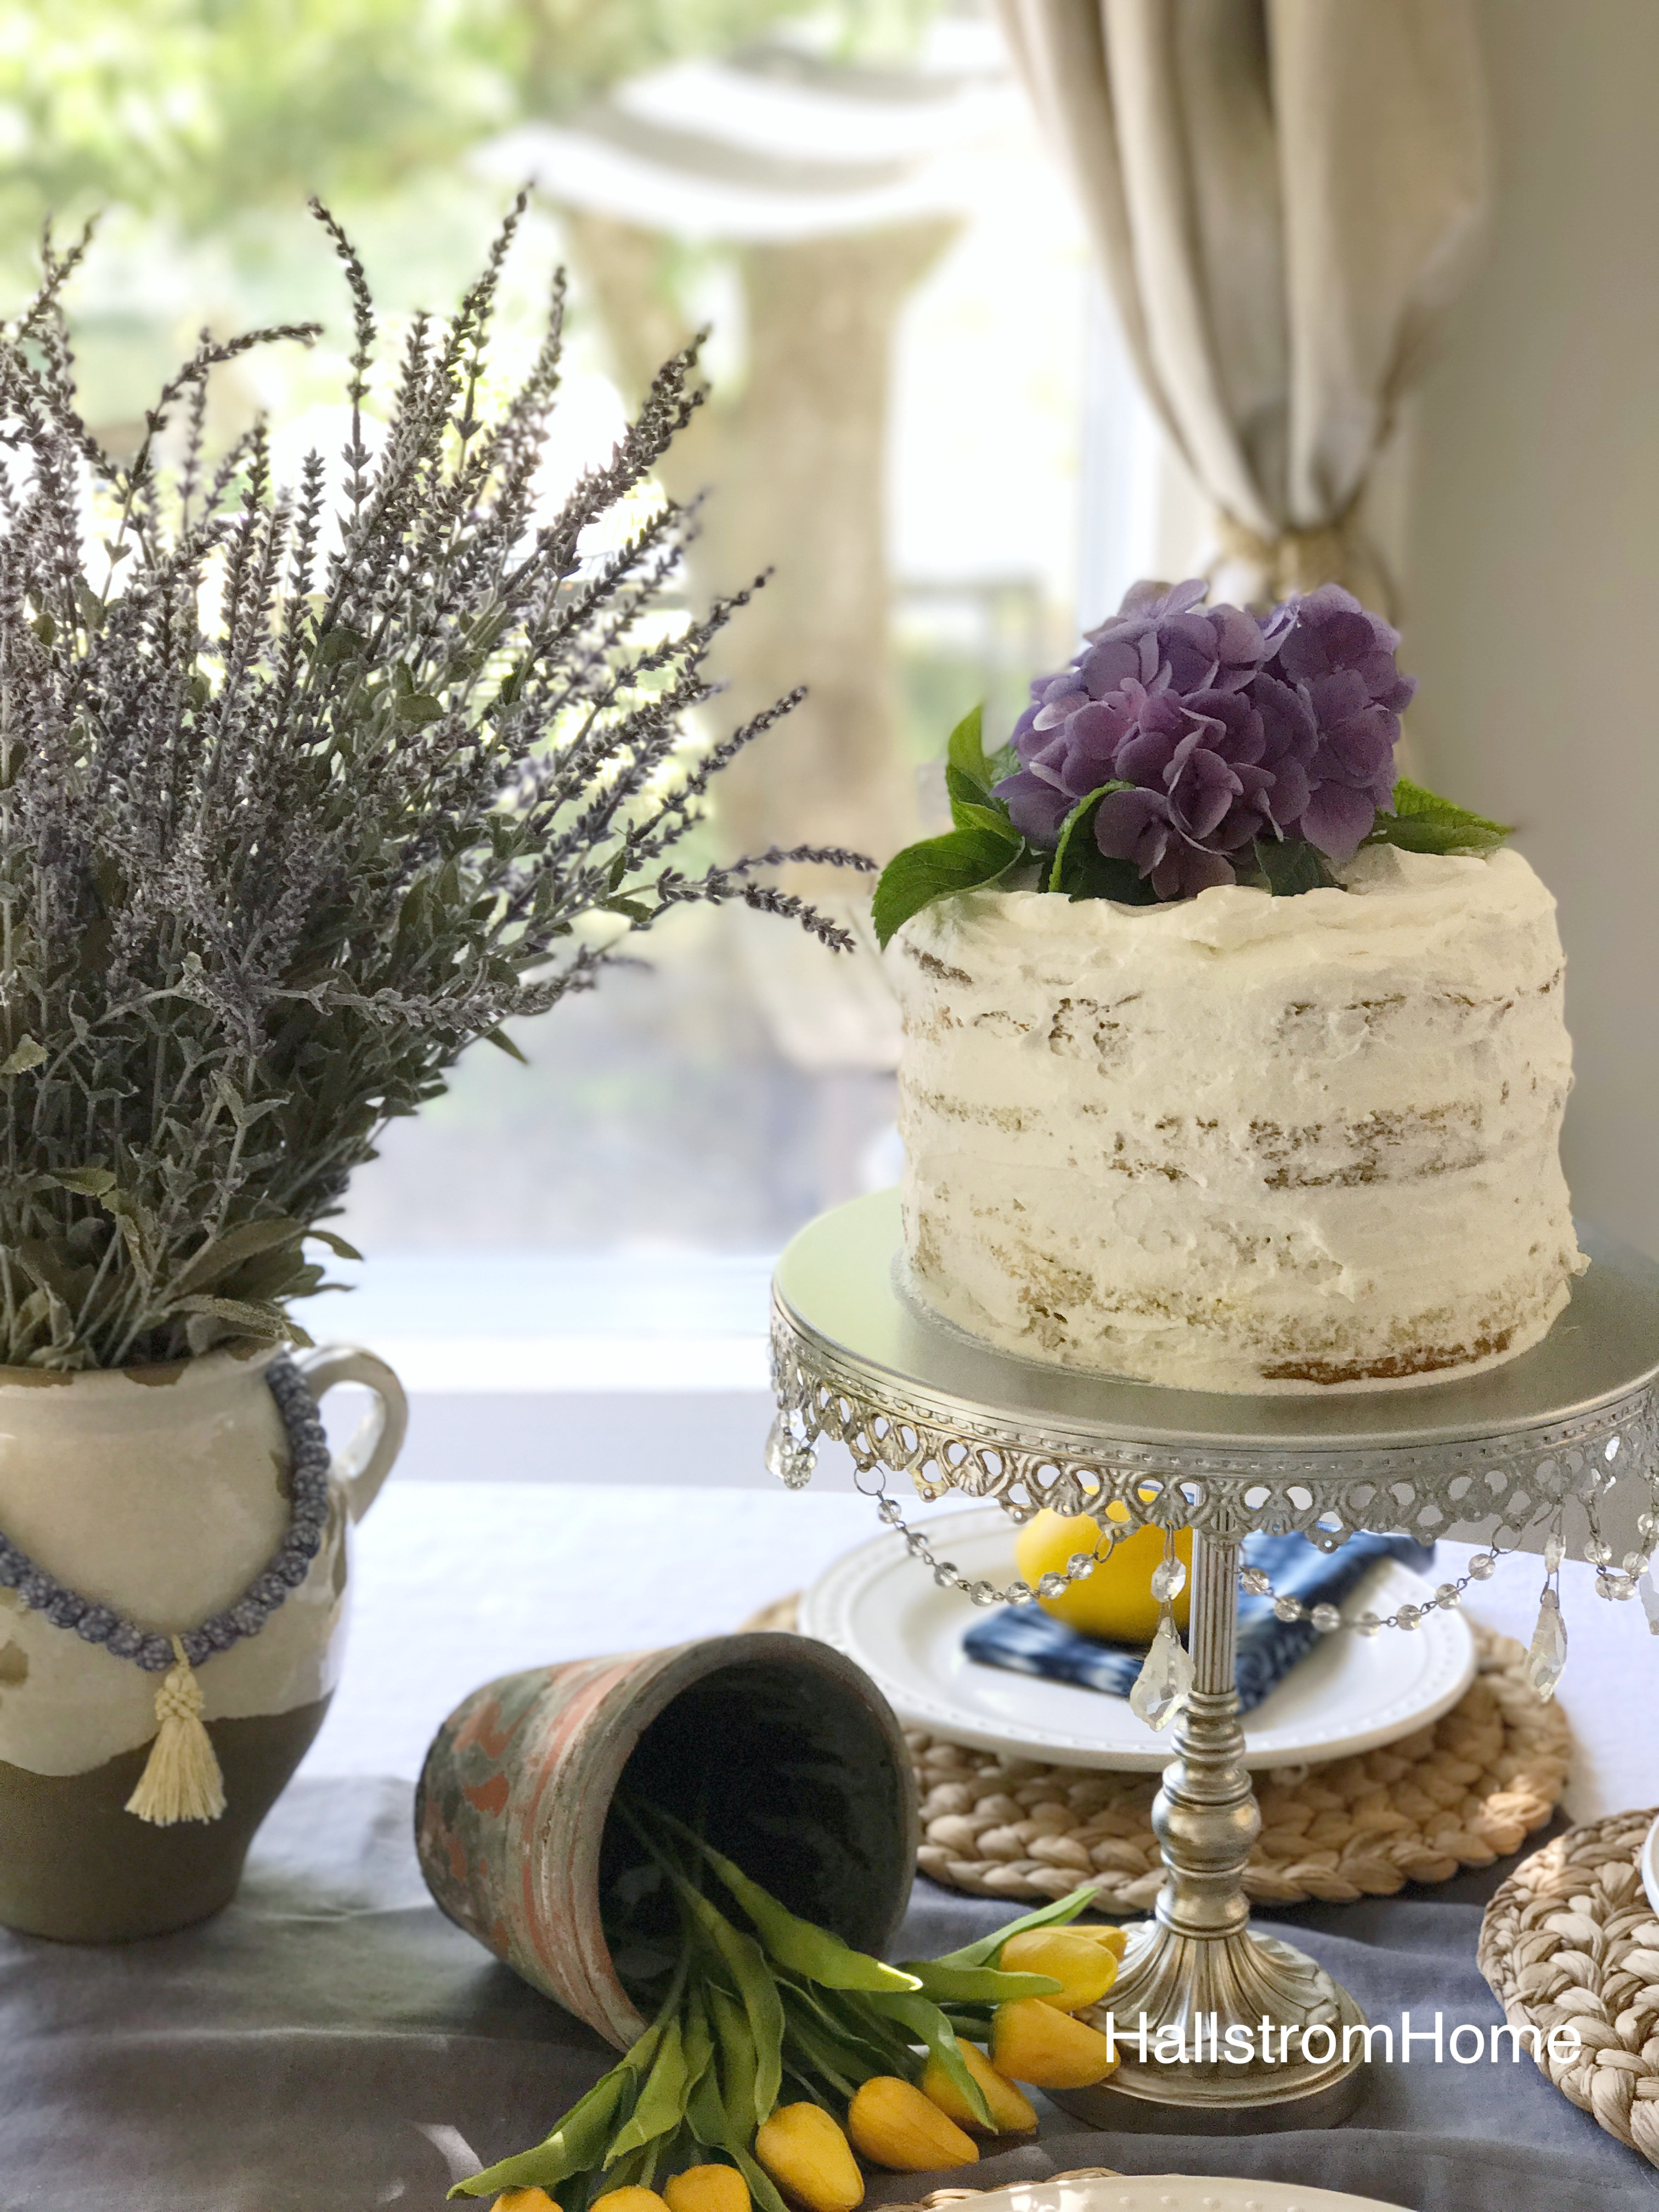 The Best Poppy Seed Layer Cake for Cheaters